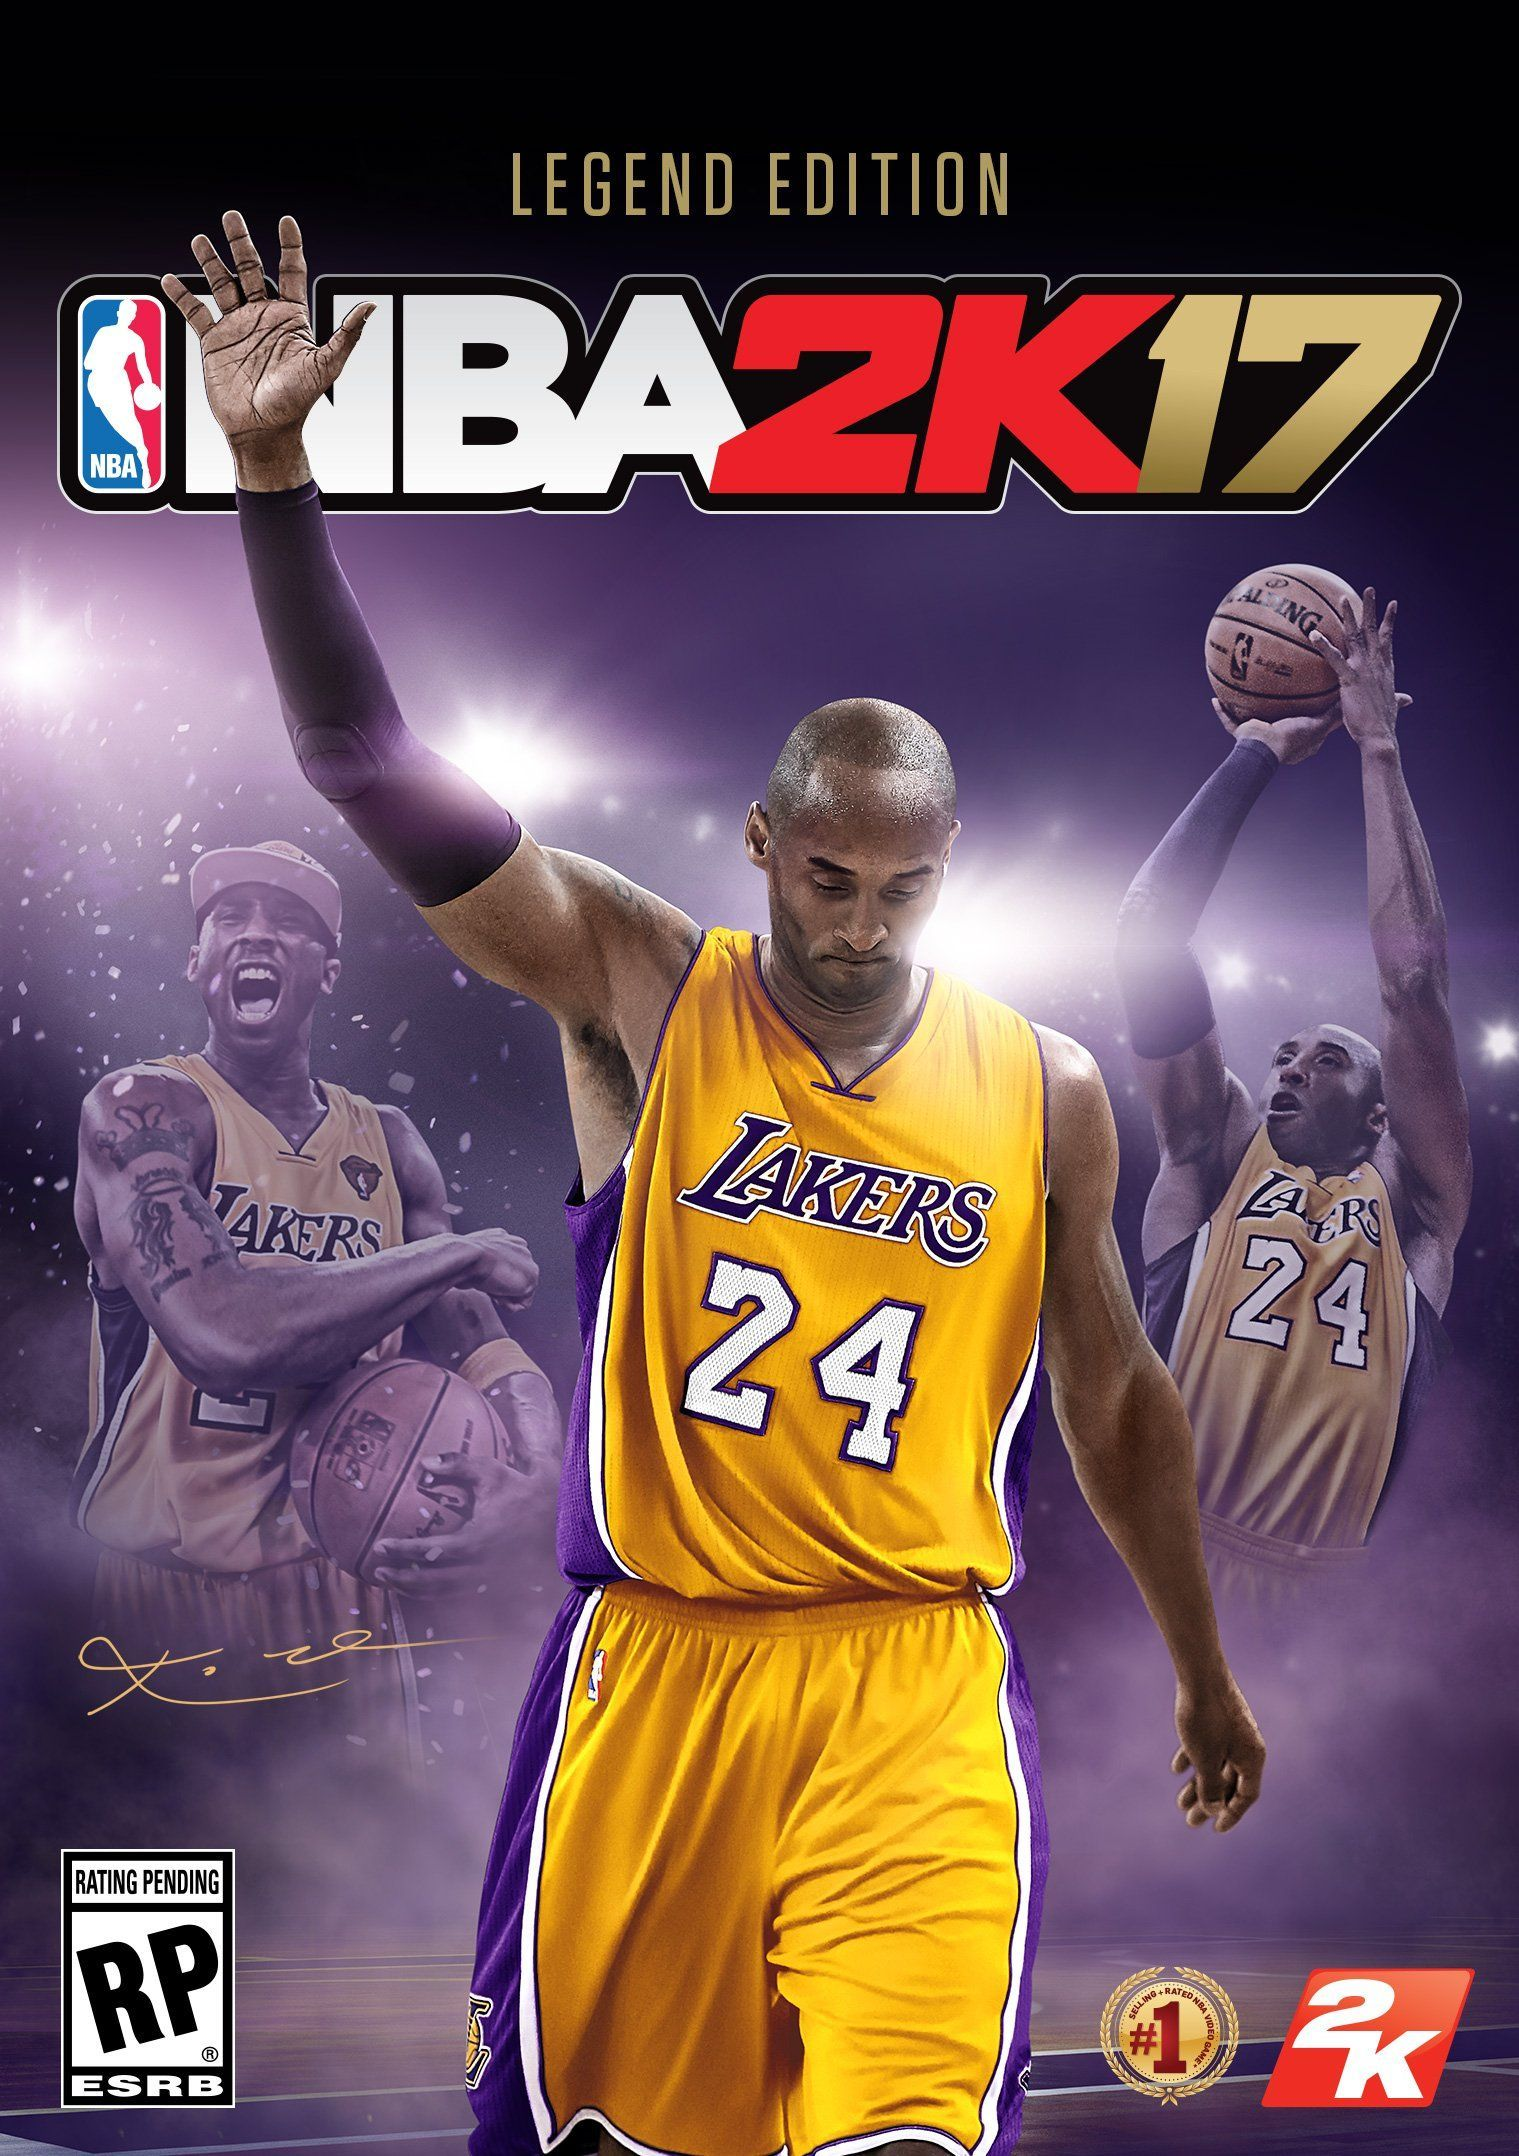 nike shoes nba 2k17 legend edition gameplay games 867514